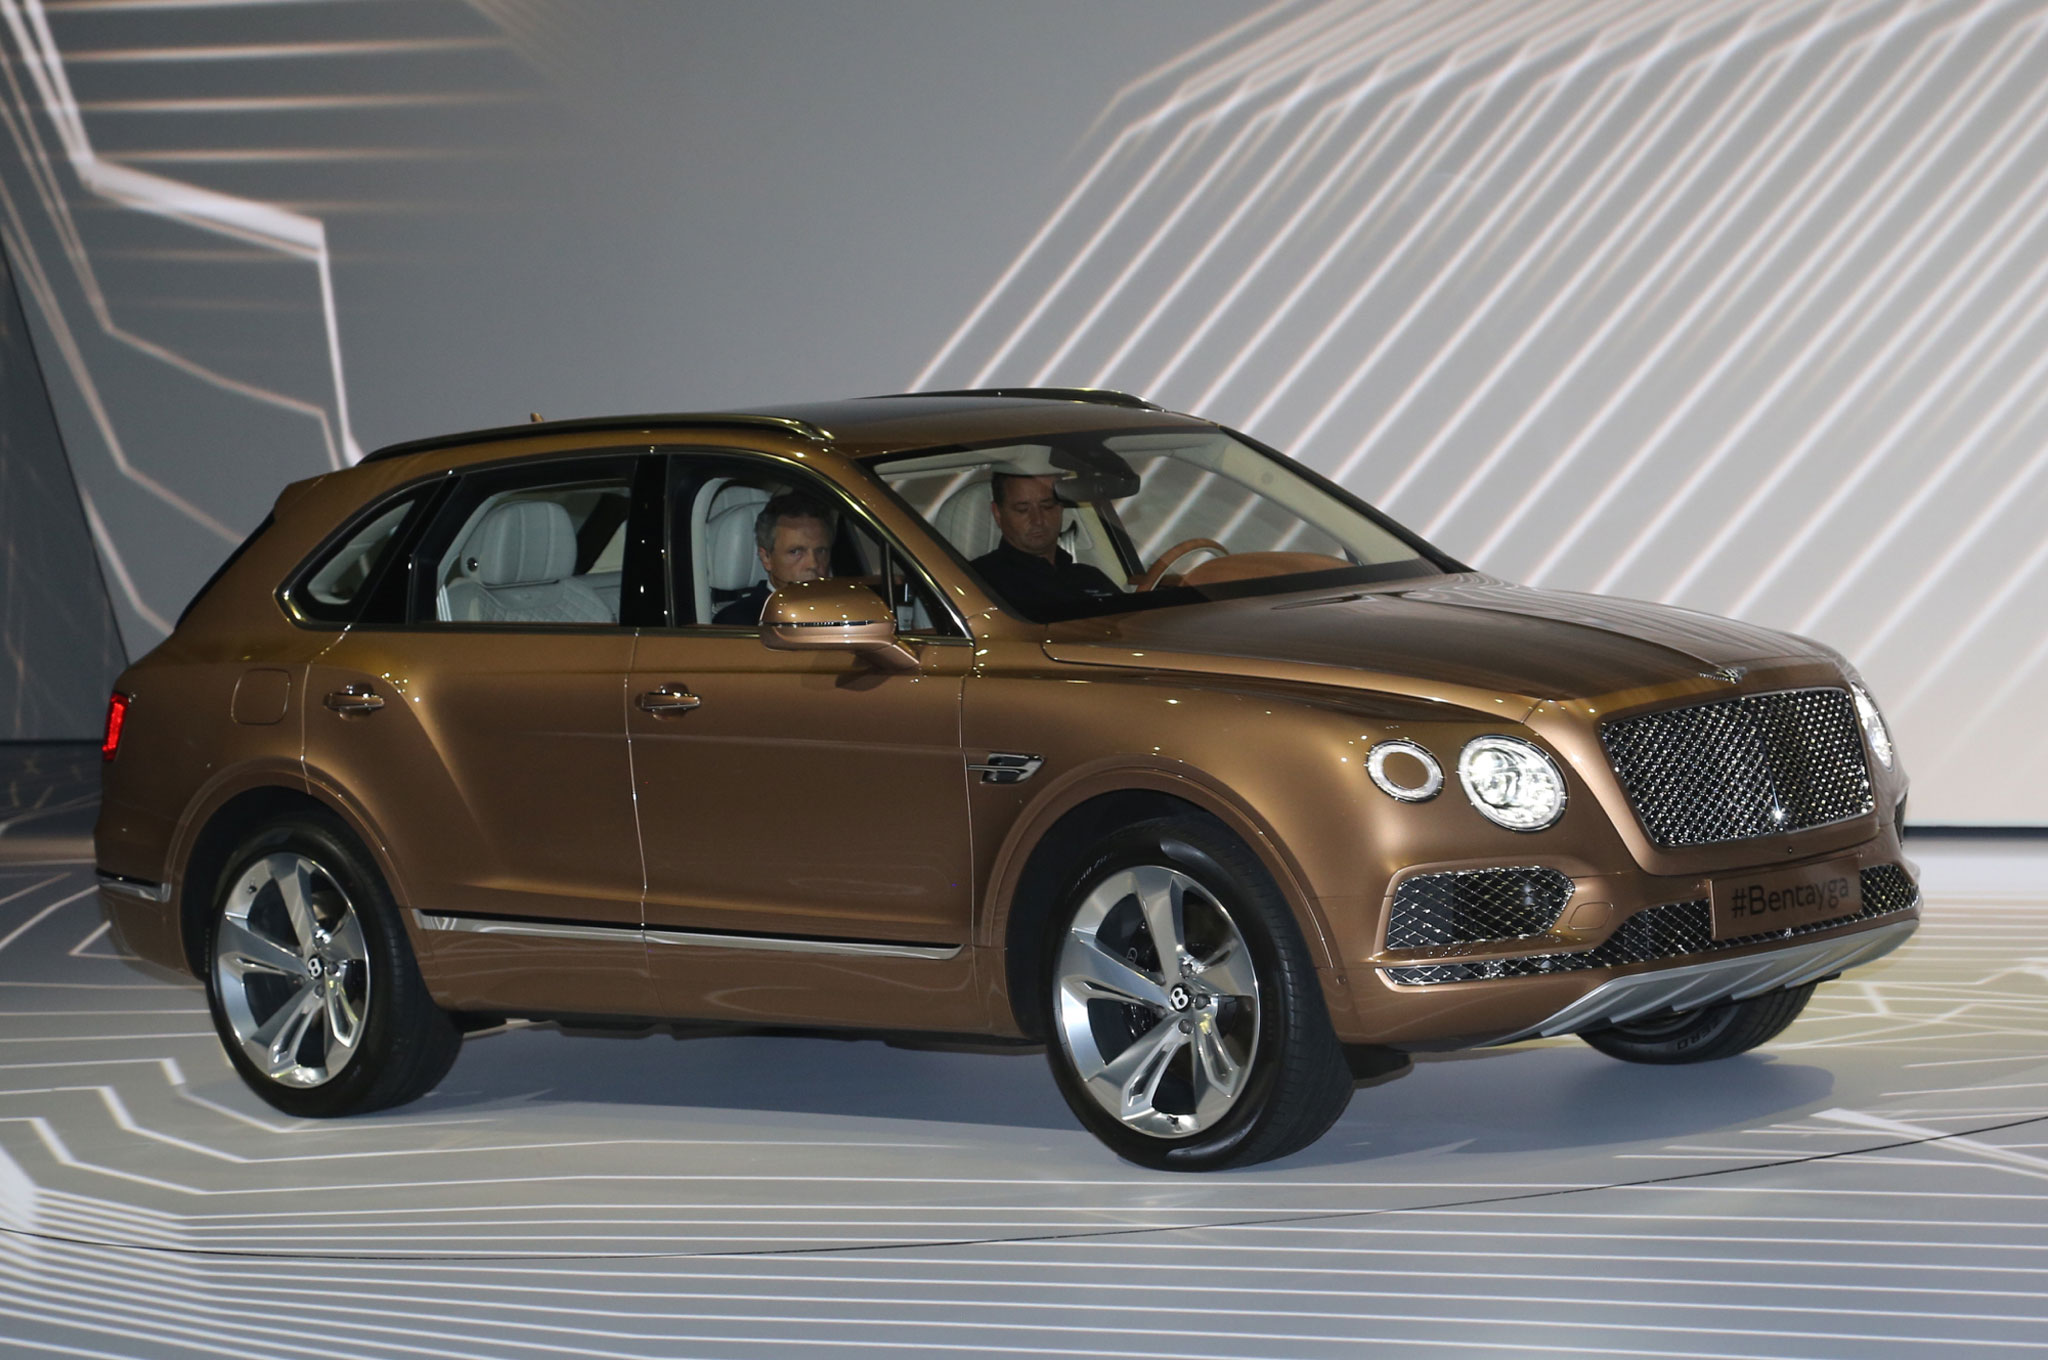 2017 bentley bentayga suv revealed ahead of frankfurt. Black Bedroom Furniture Sets. Home Design Ideas